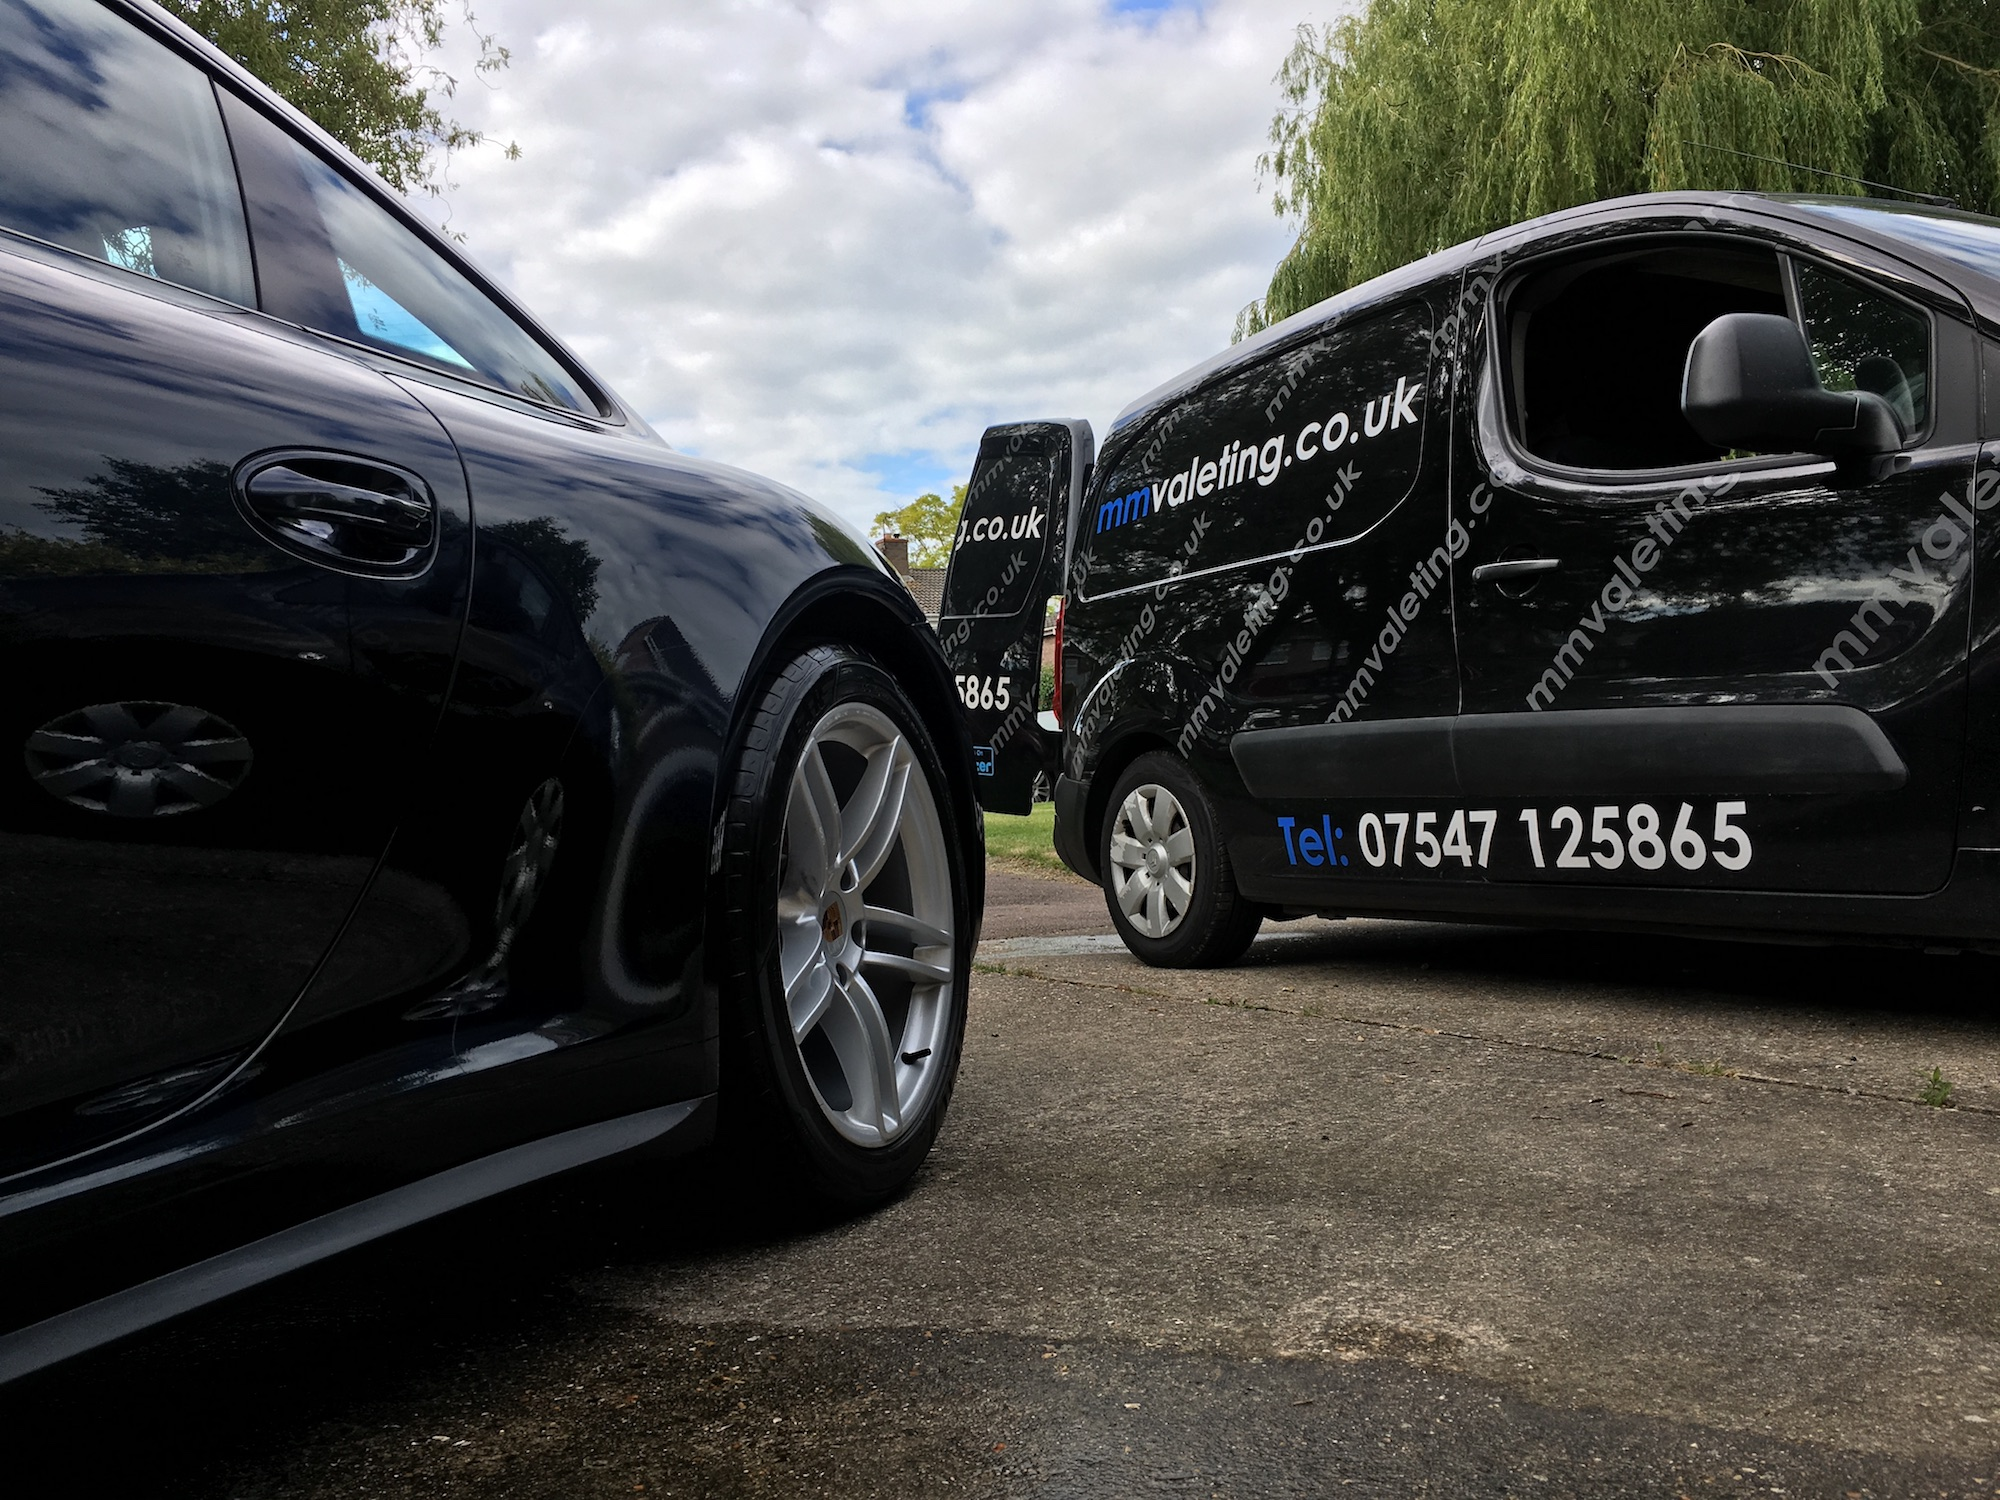 Mobile car valeting and car detailing in Thame by mmvaleting